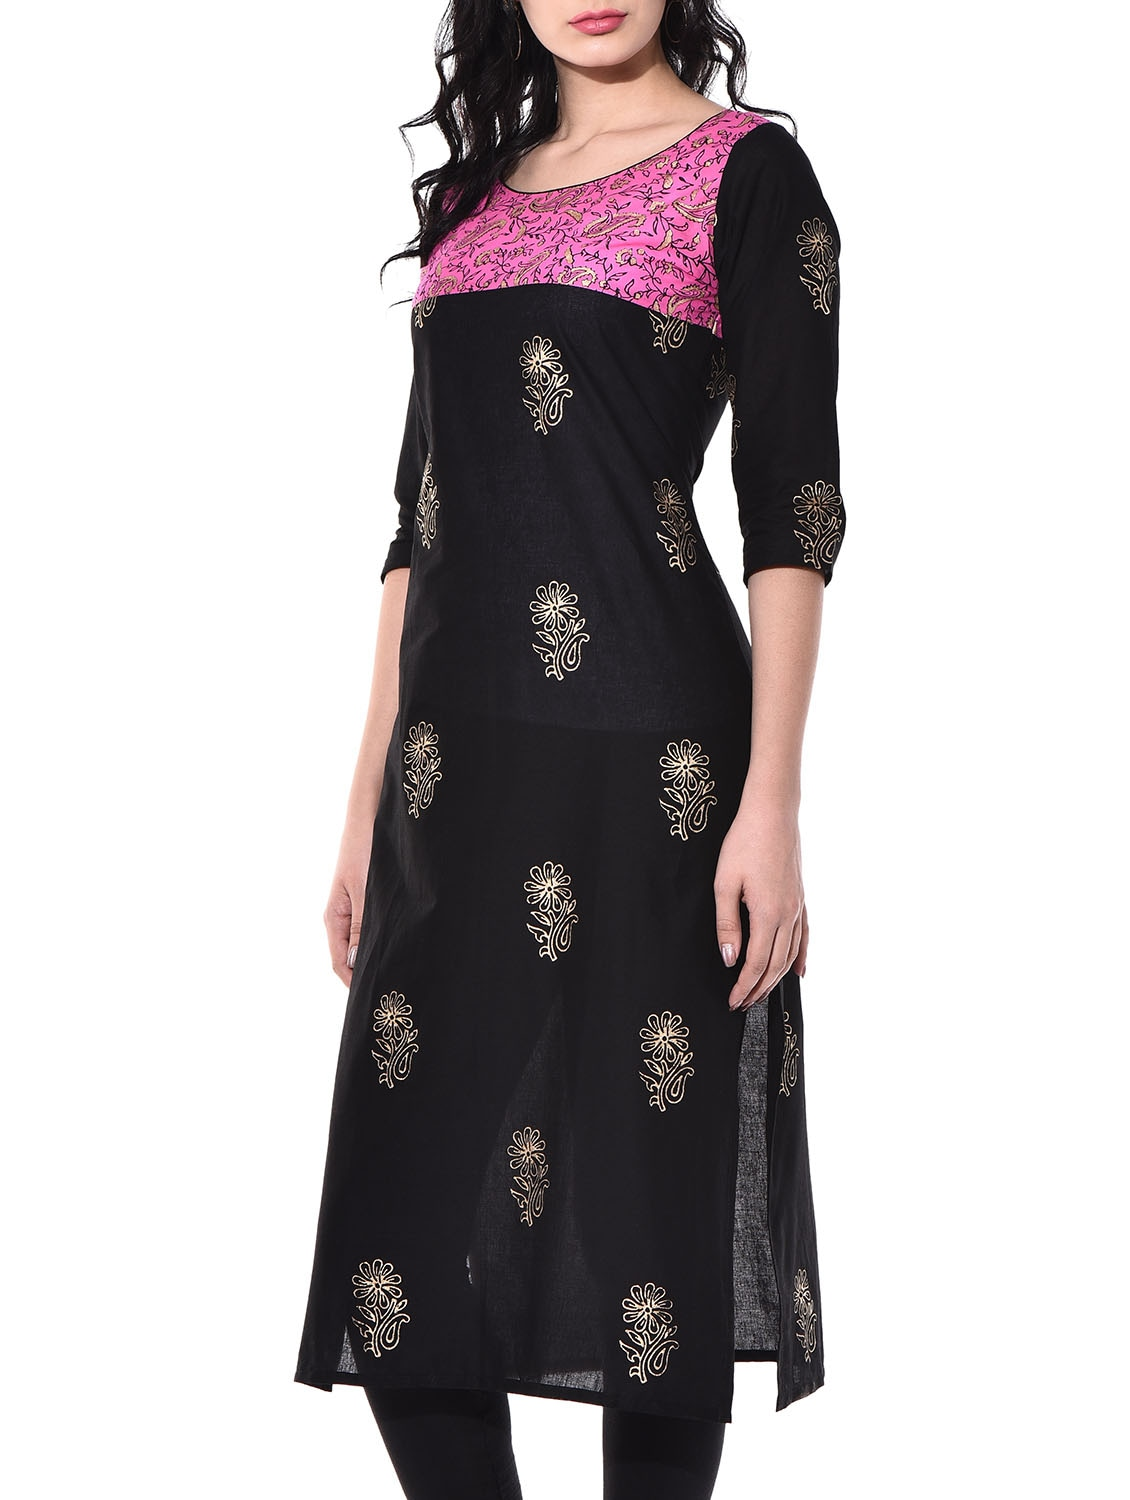 3da926f0134e Buy Black Cotton Straight Kurta for Women from Riya for ₹469 at 57% off |  2019 Limeroad.com